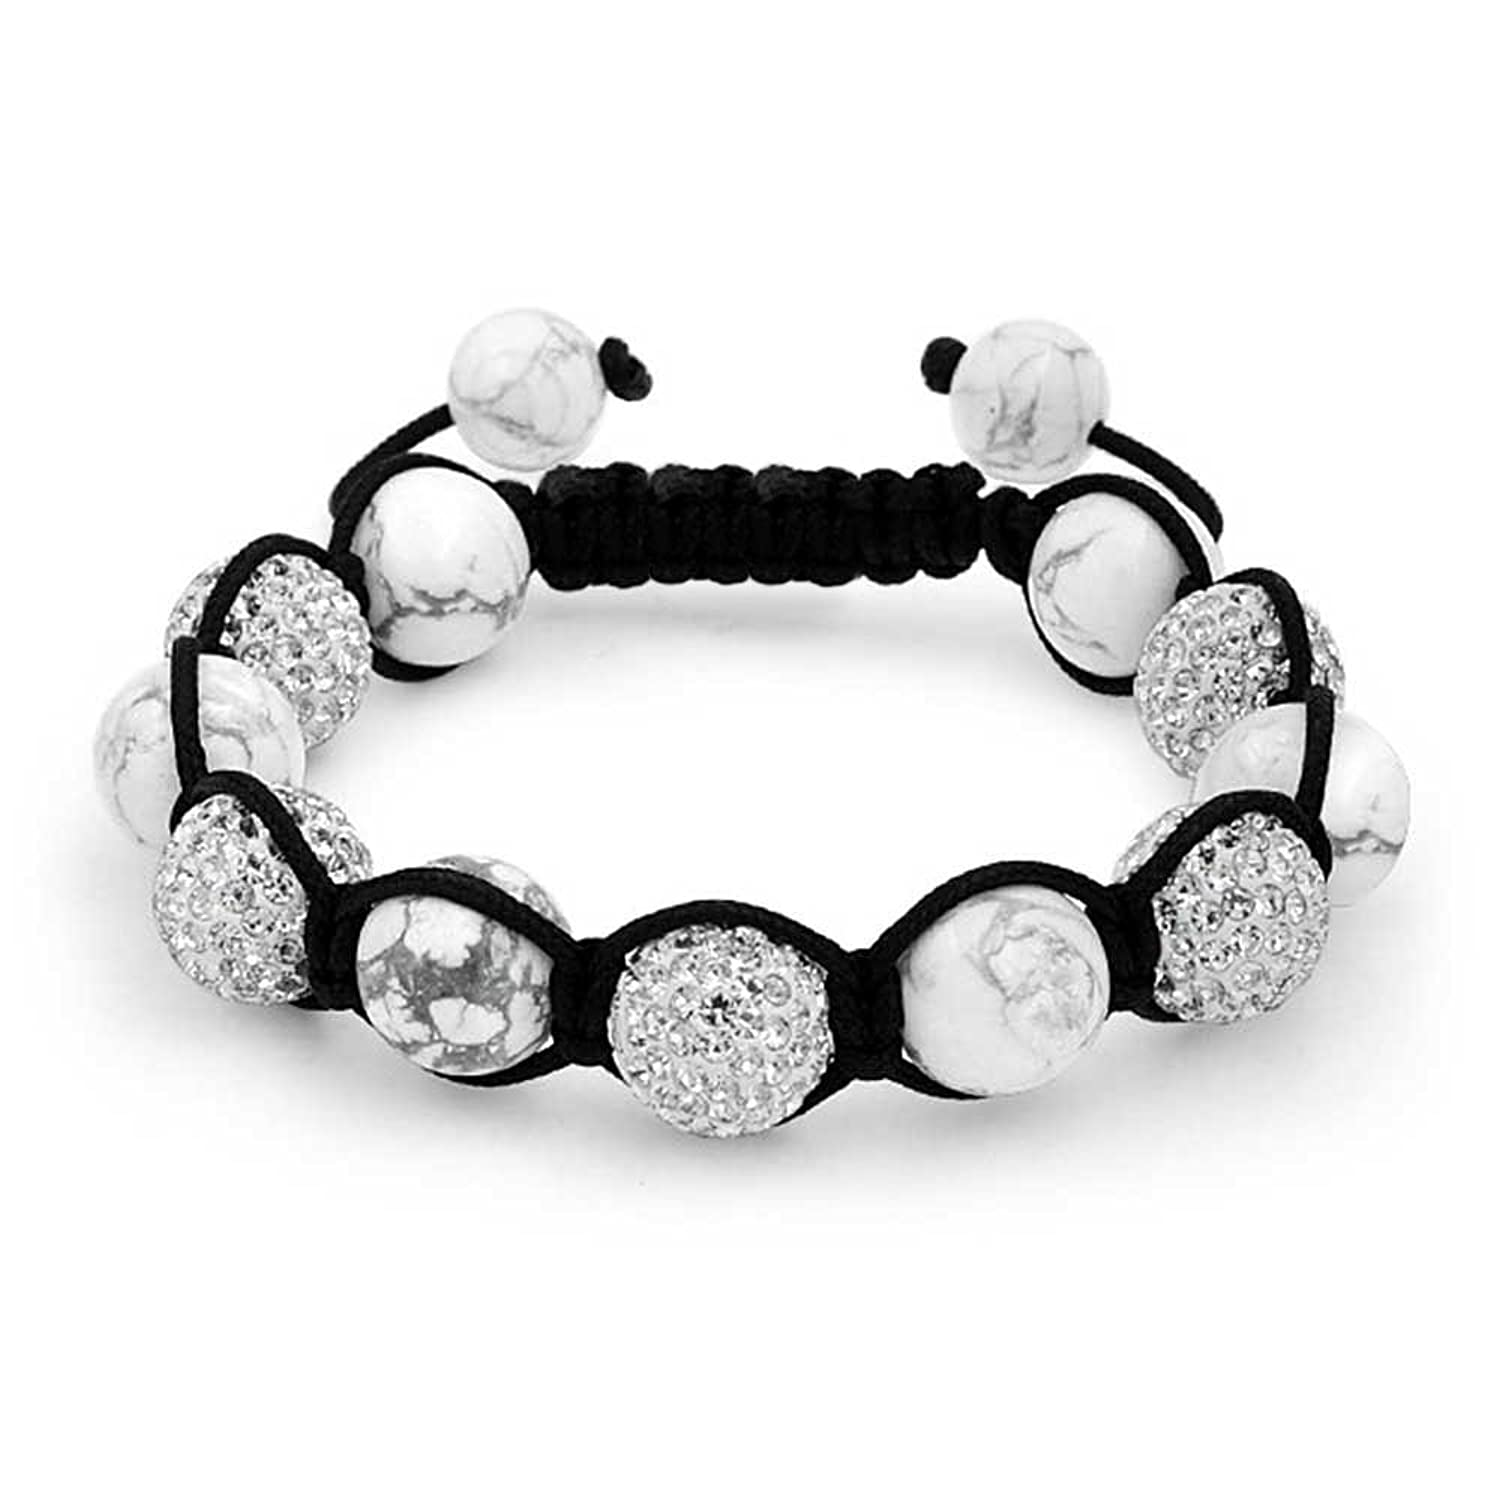 Bling Jewelry Simulated Howlite Shamballa Inspired Bracelet Crystal Alloy